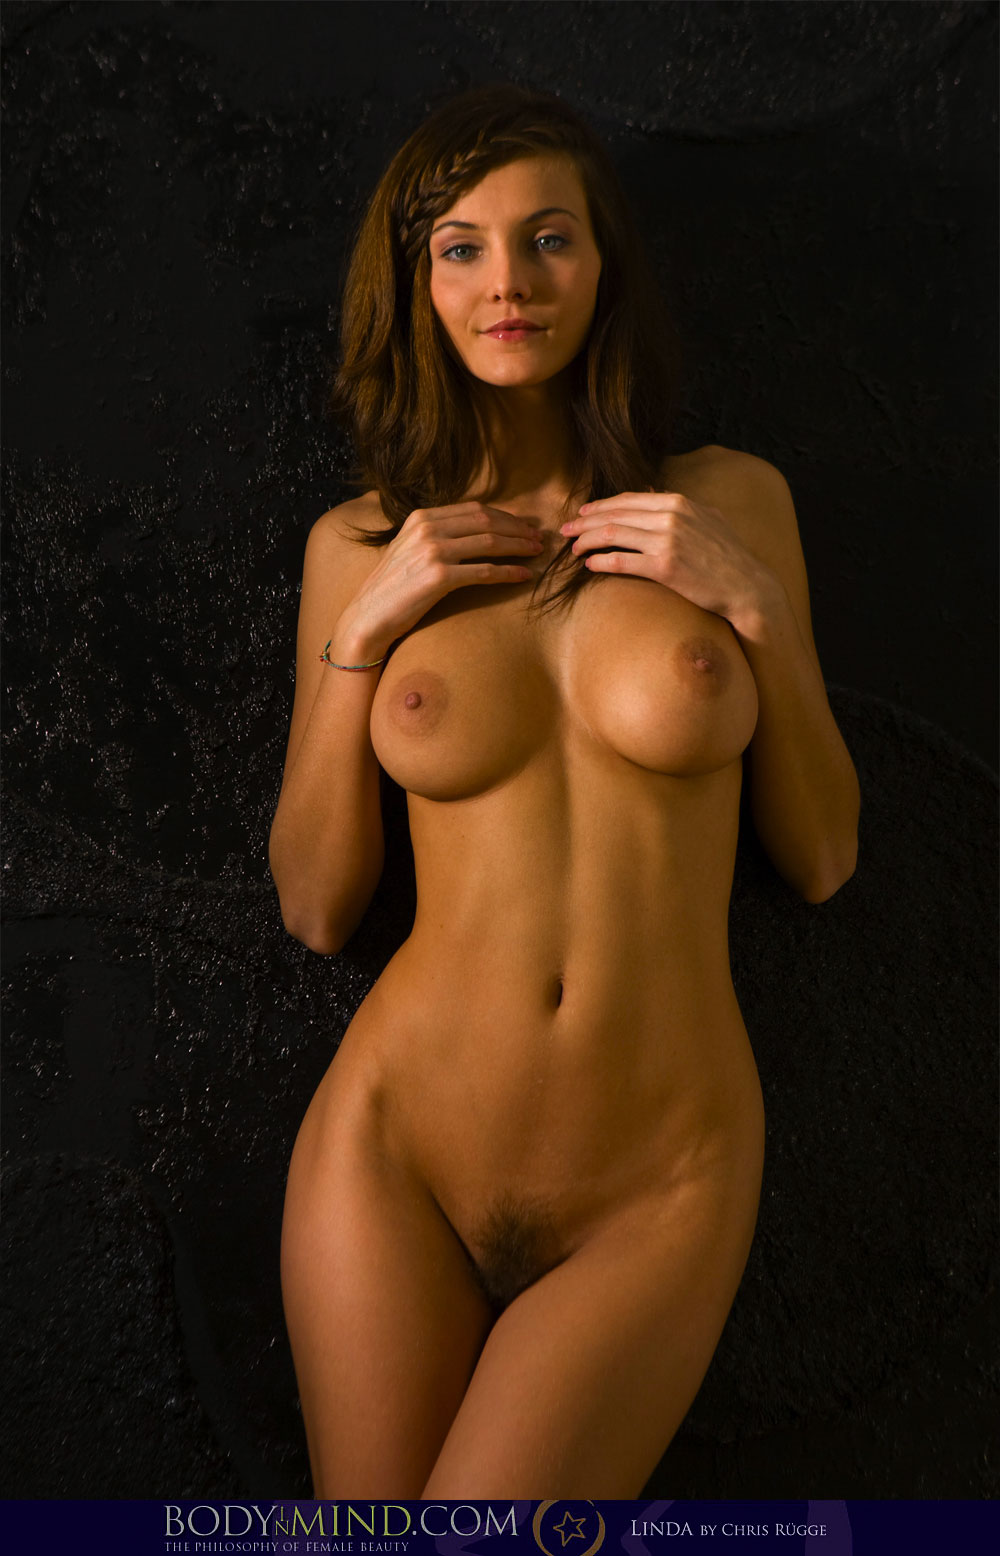 Body in mind nudes